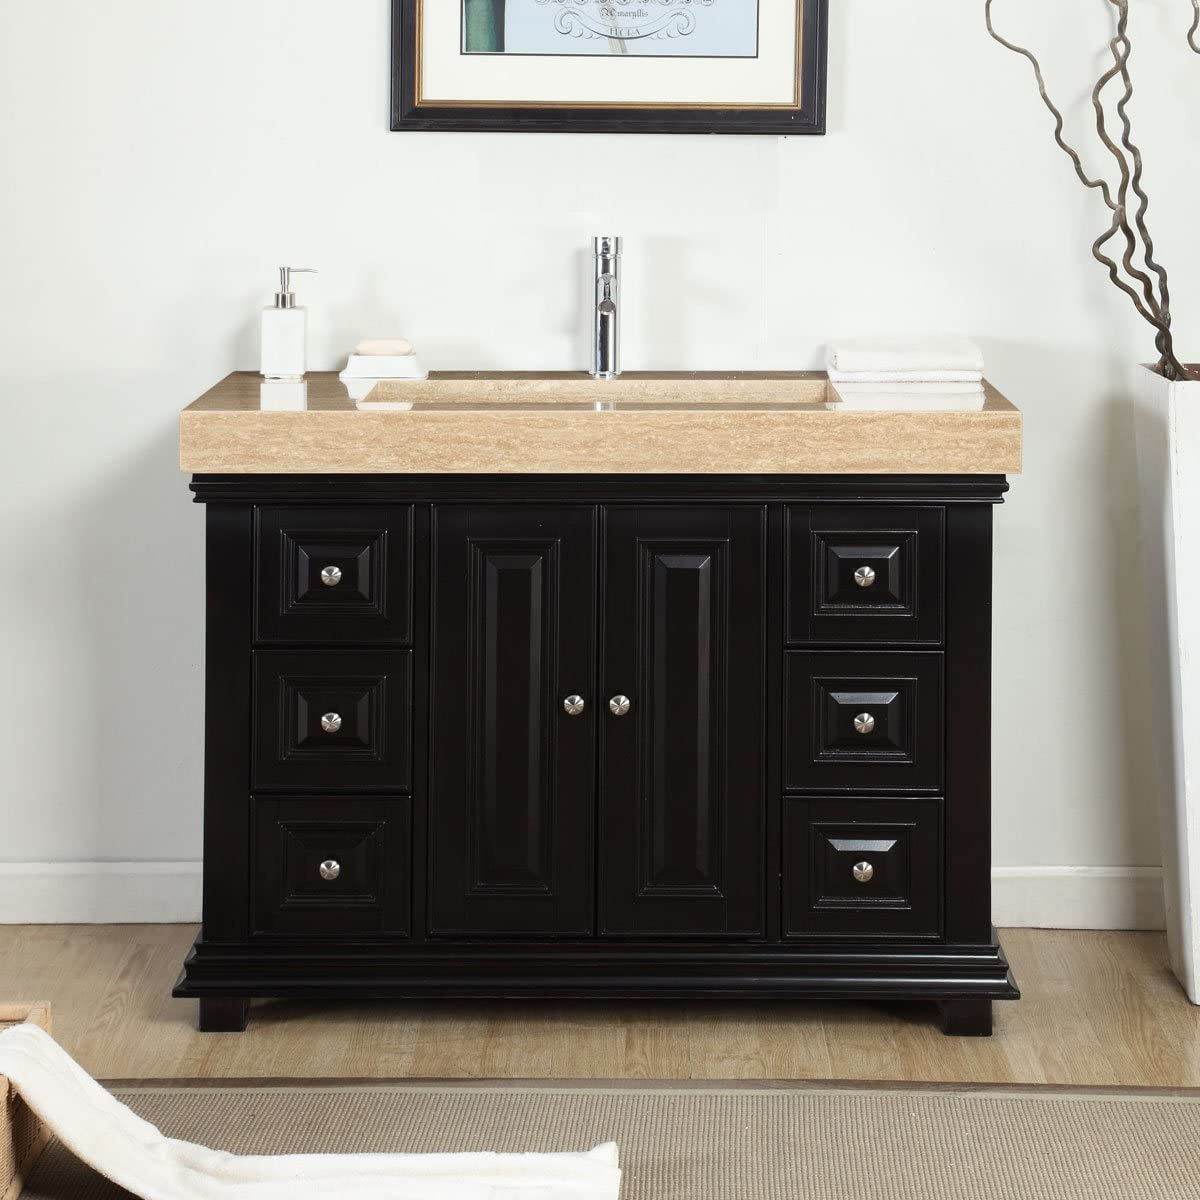 Silkroad Exclusive V0284TR48C 48 Single Sink Cabinet with 7 Drawers 2 Doors Travertine Top and Ramp Sink 1-Hole in Espresso